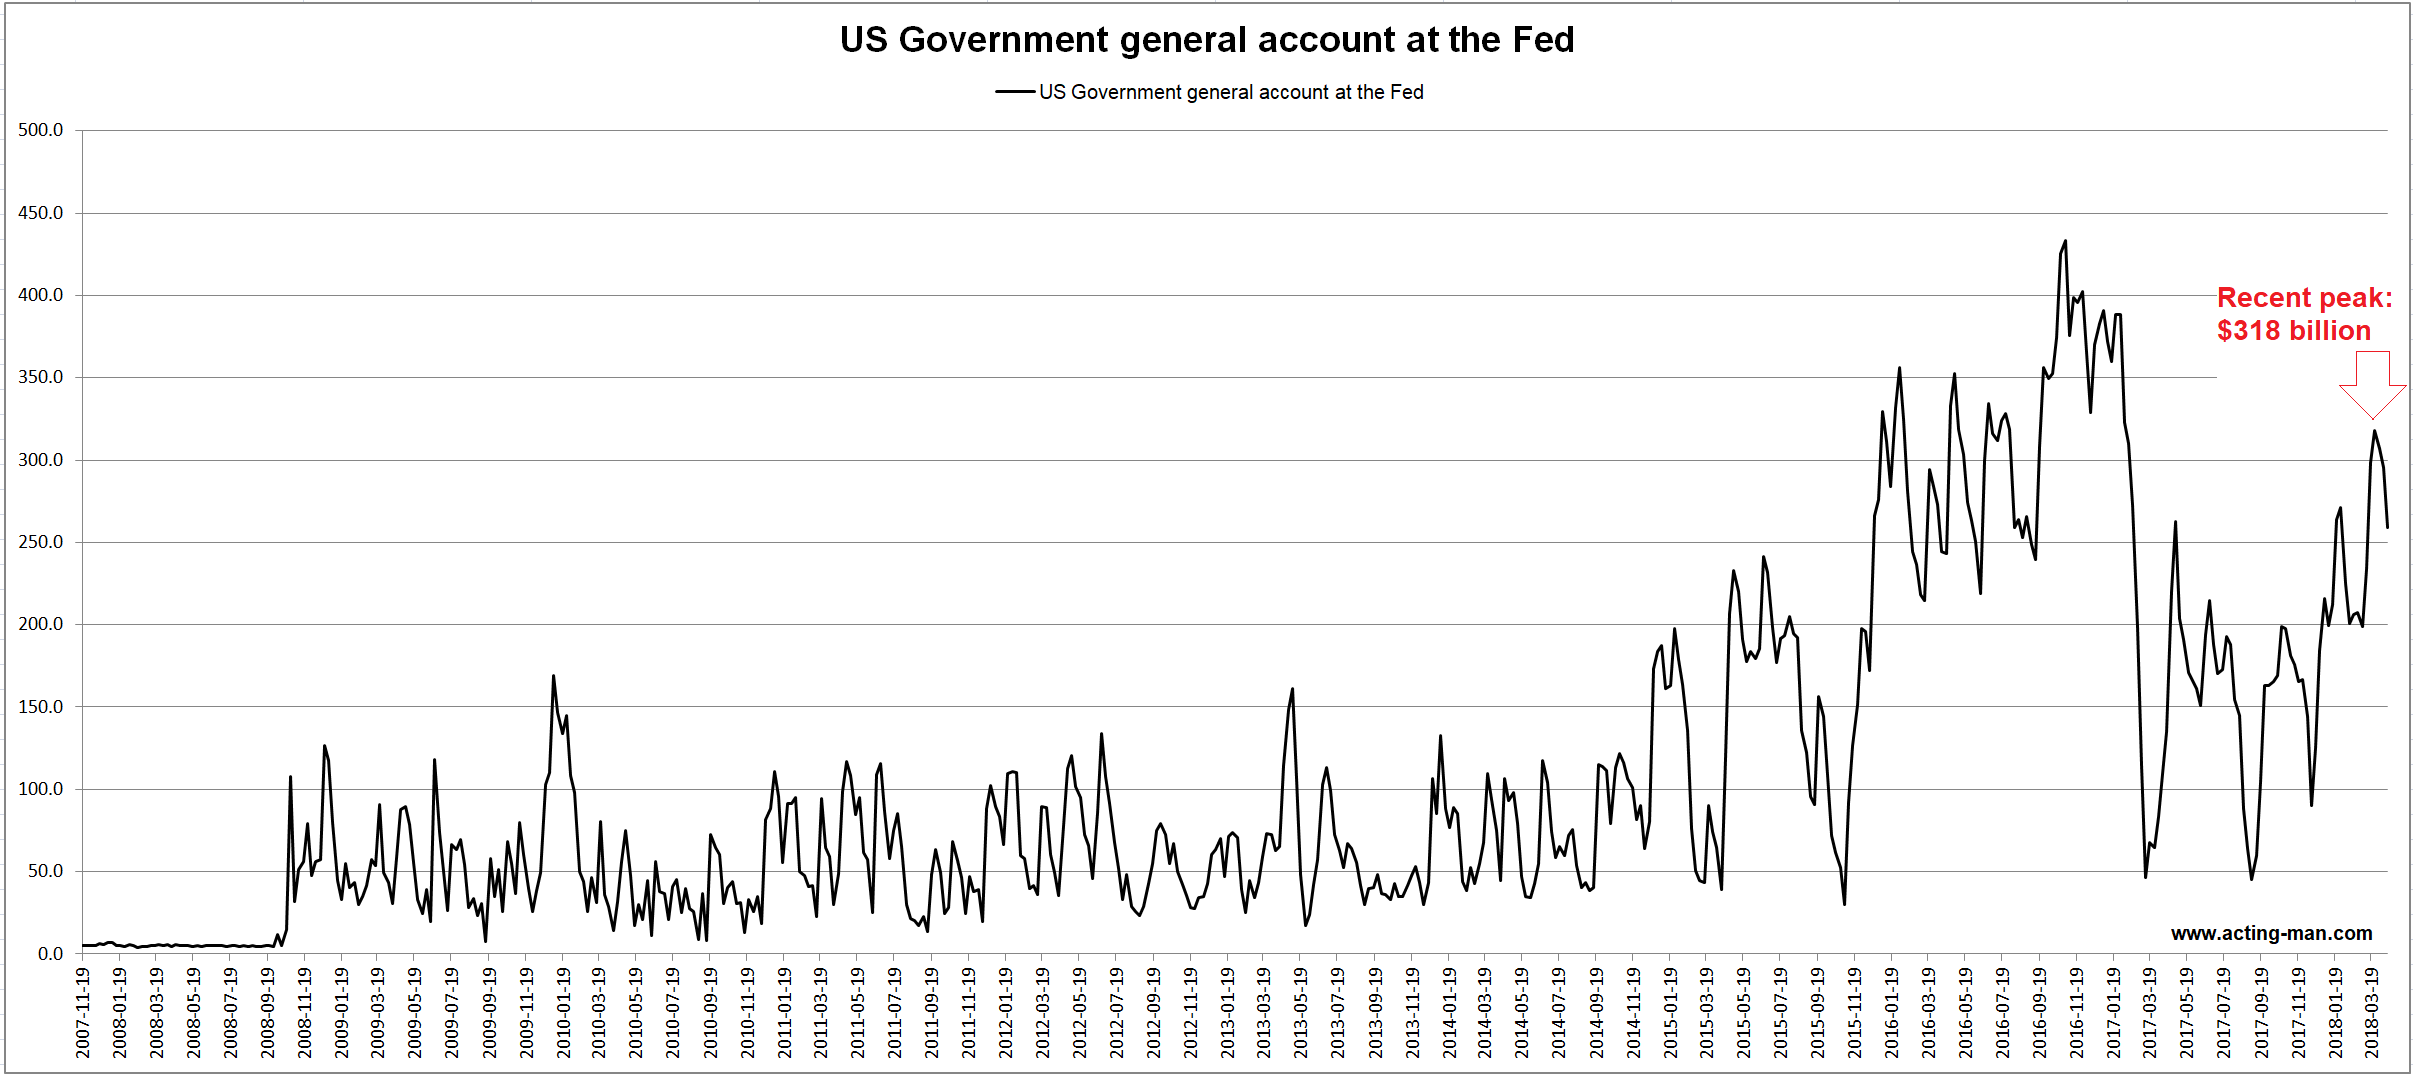 US Government General Account at the Fed, Nov 2007 - Mar 2018